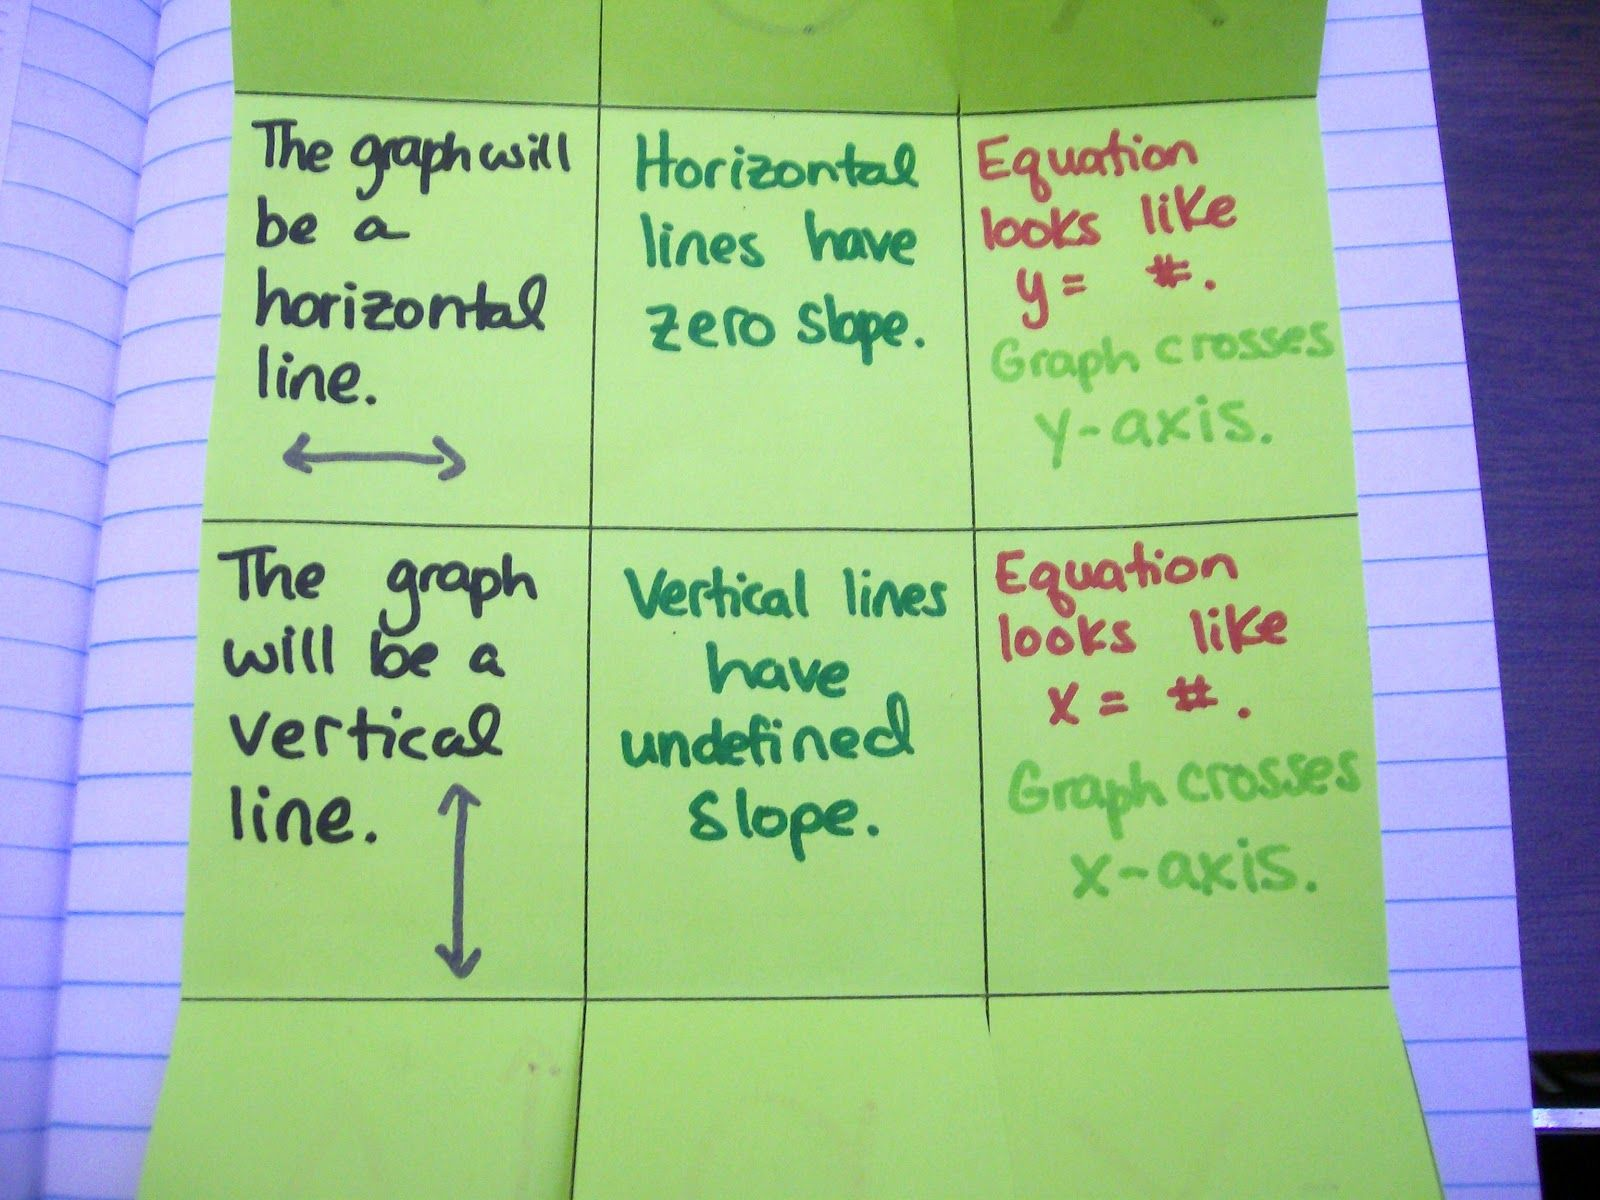 worksheet Graphing Horizontal And Vertical Lines Worksheet my algebra 1 students just recently finished learning to graph horizontal and vertical lines for